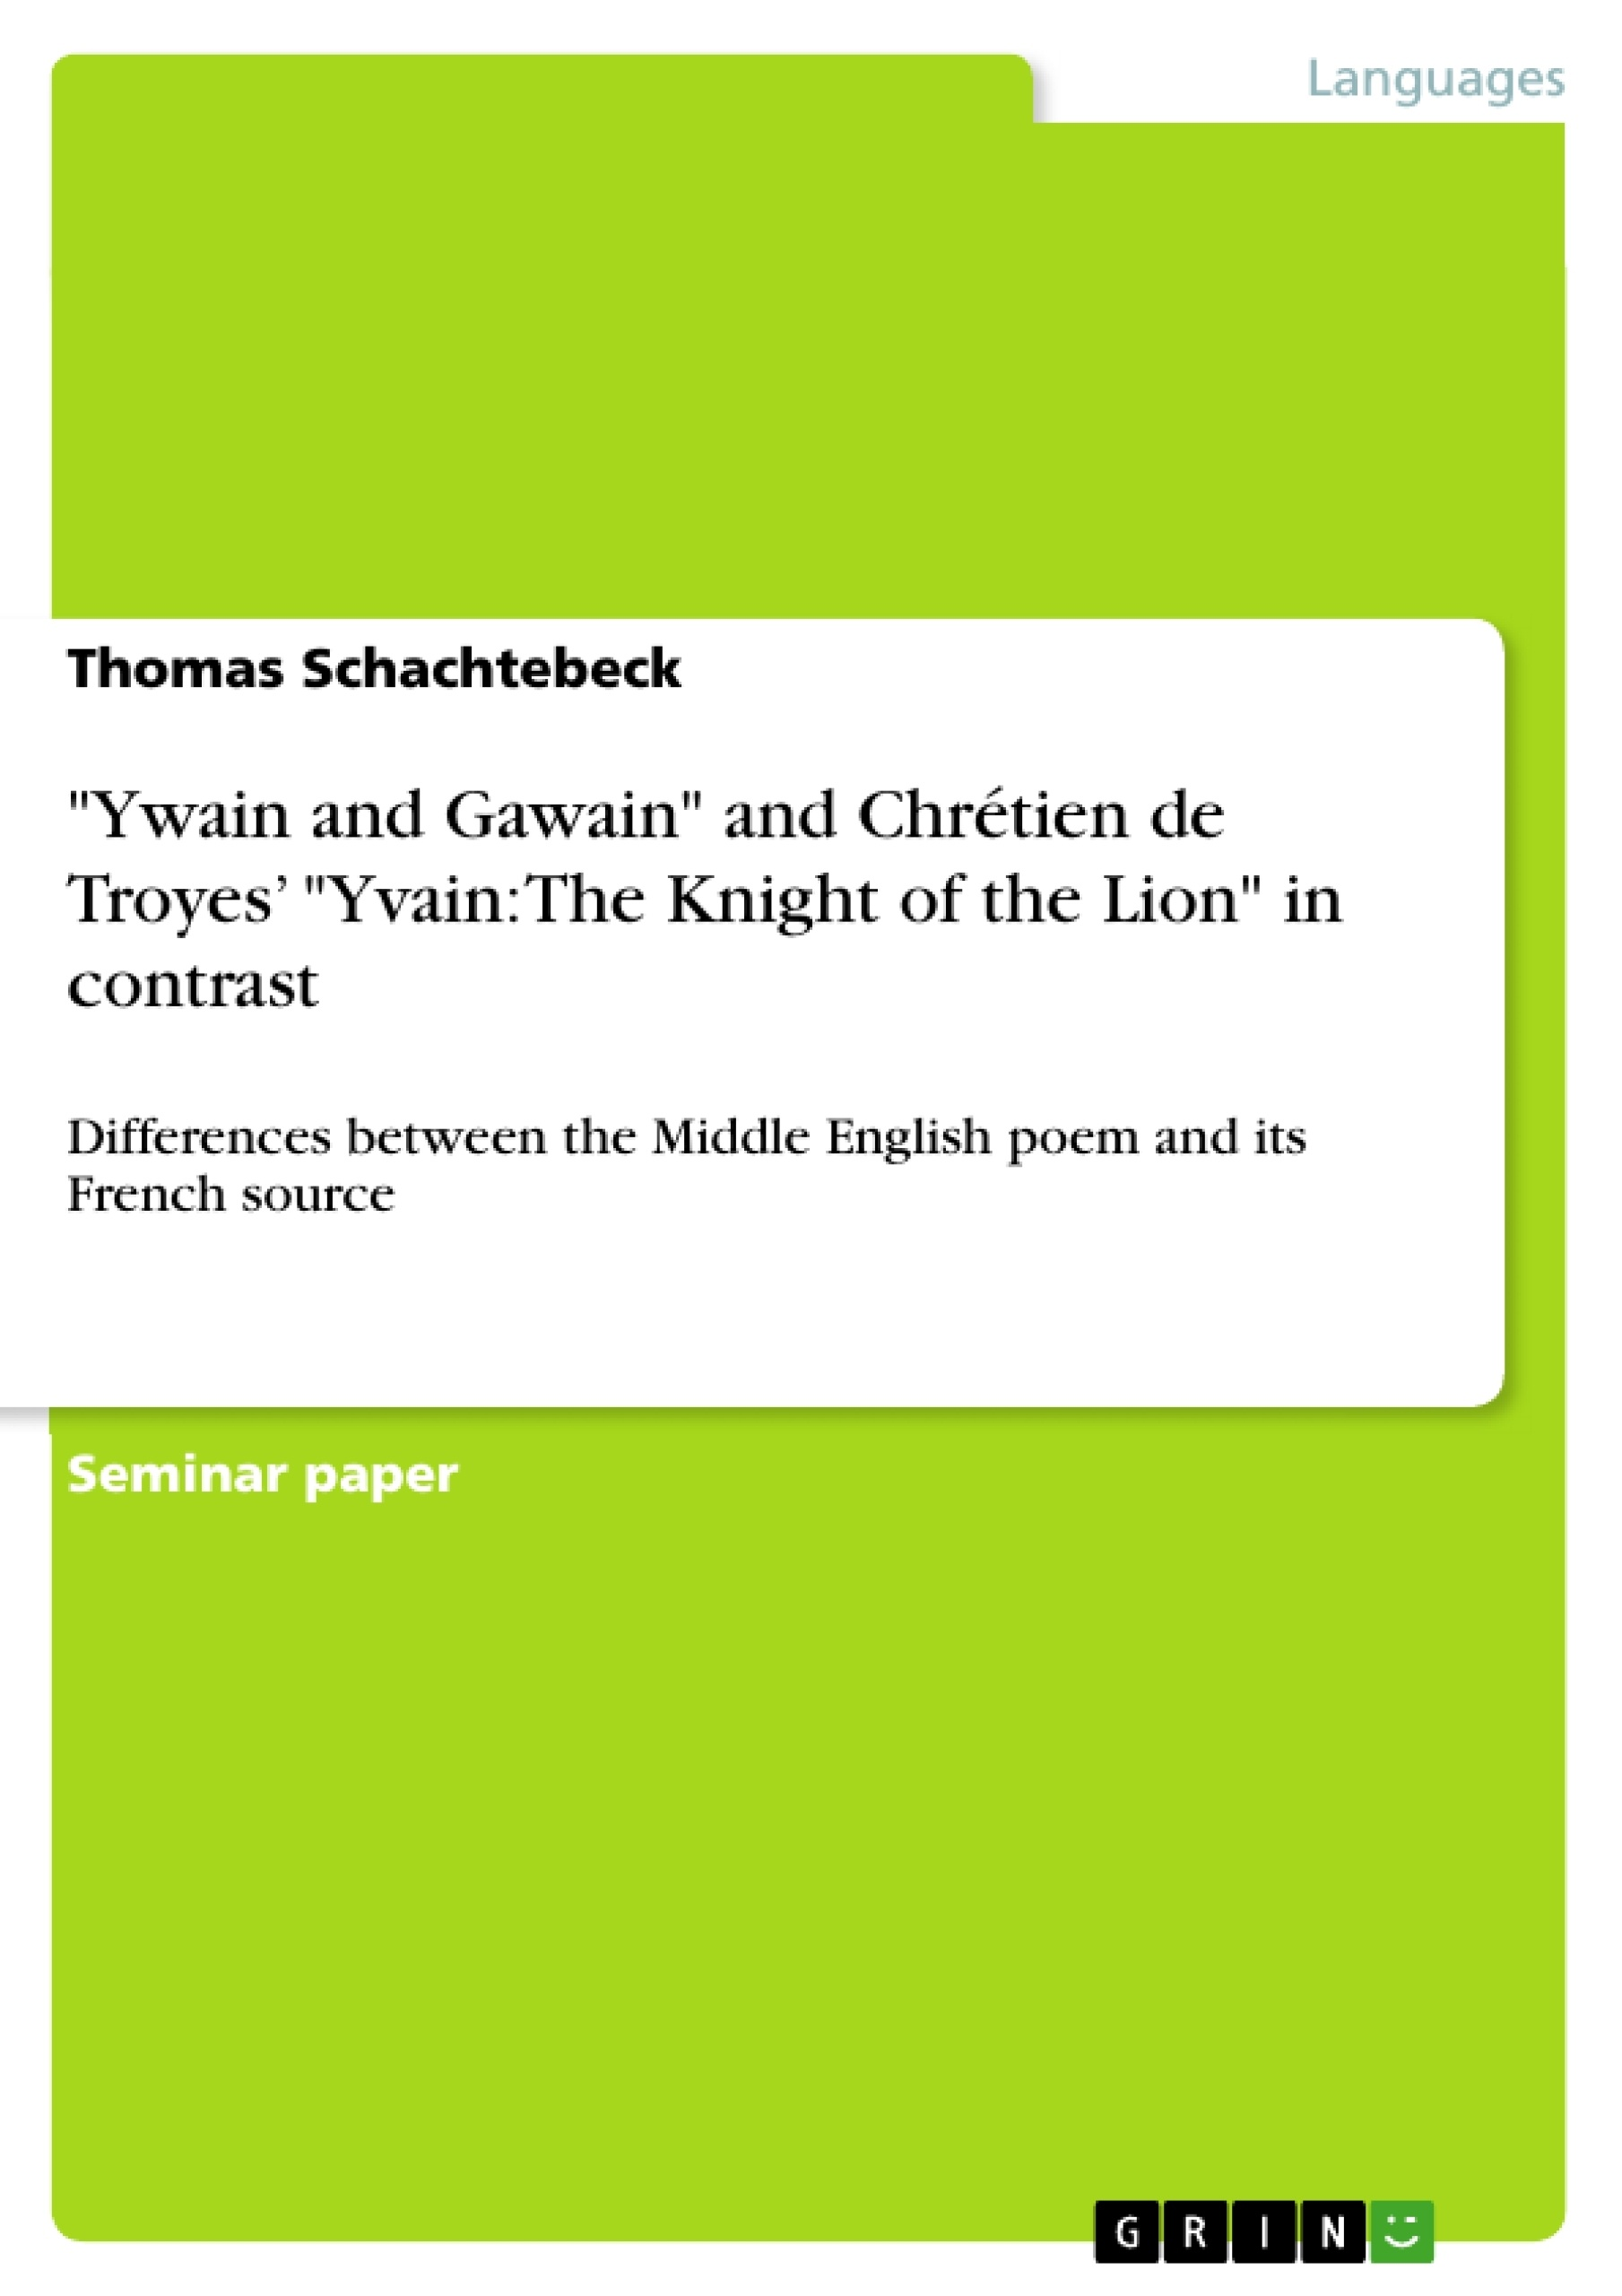 ywain and gawain and chr eacute tien de troyes yvain the knight of ywain and gawain and chreacutetien de troyes yvain the knight of publish your master s thesis bachelor s thesis essay or term paper